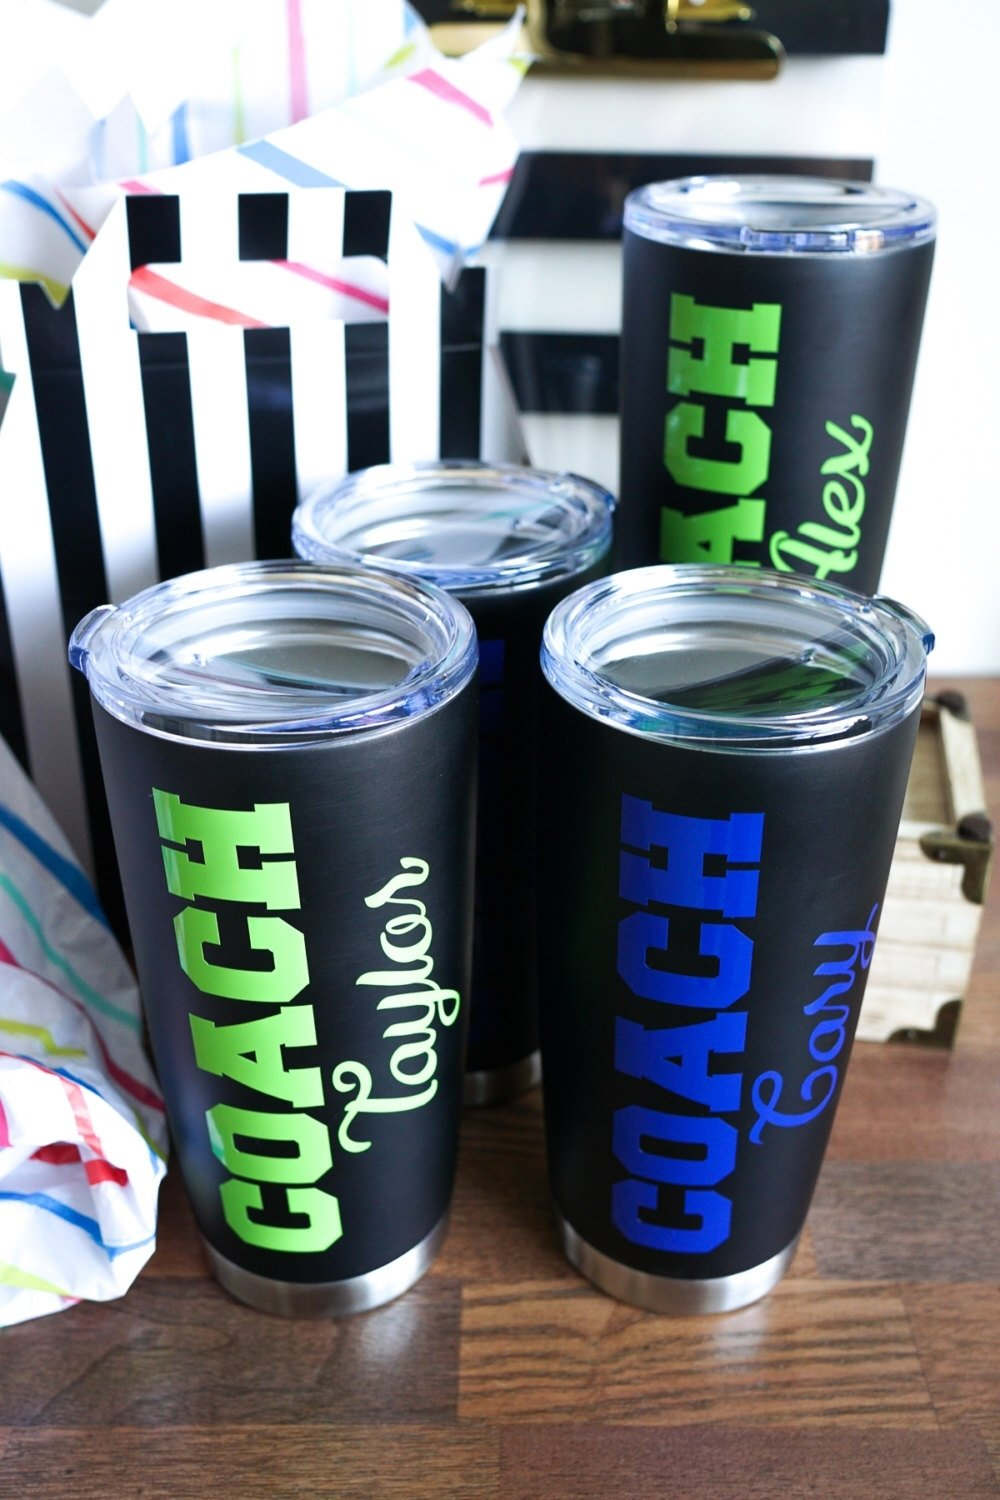 10 Ideal Gift Ideas For Soccer Coach christmas gift coach stainless steel tumbler coach gift soccer & 10 Ideal Gift Ideas For Soccer Coach 2019